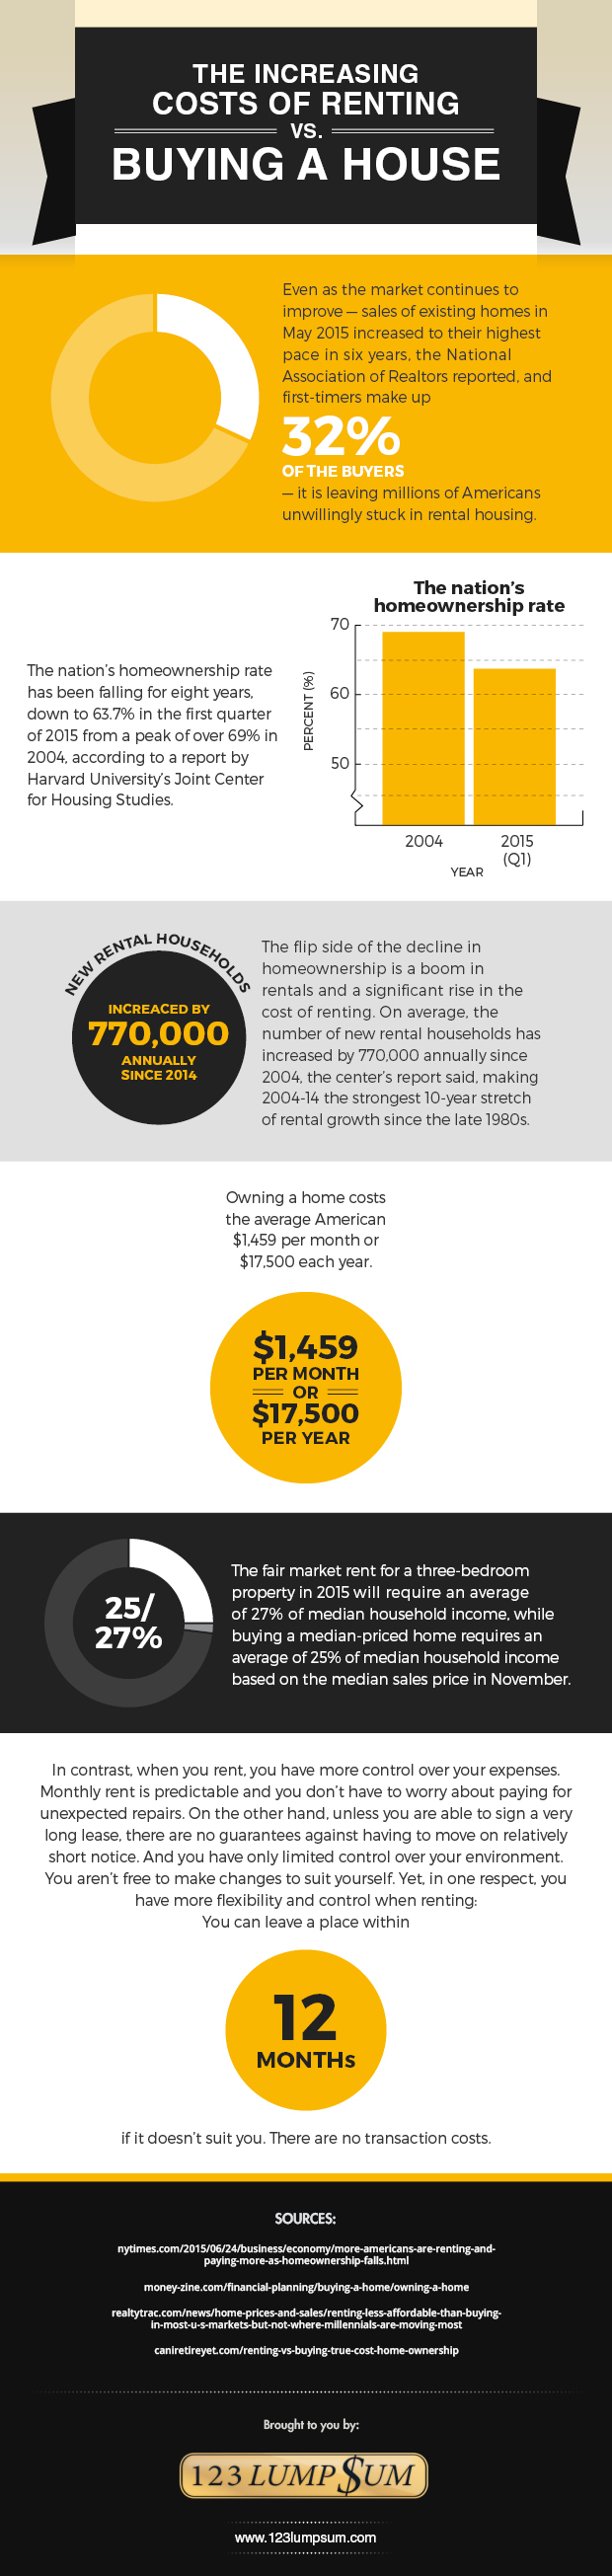 the-increasing-costs-of-renting-vs-buying-a-house_56c20133e8793